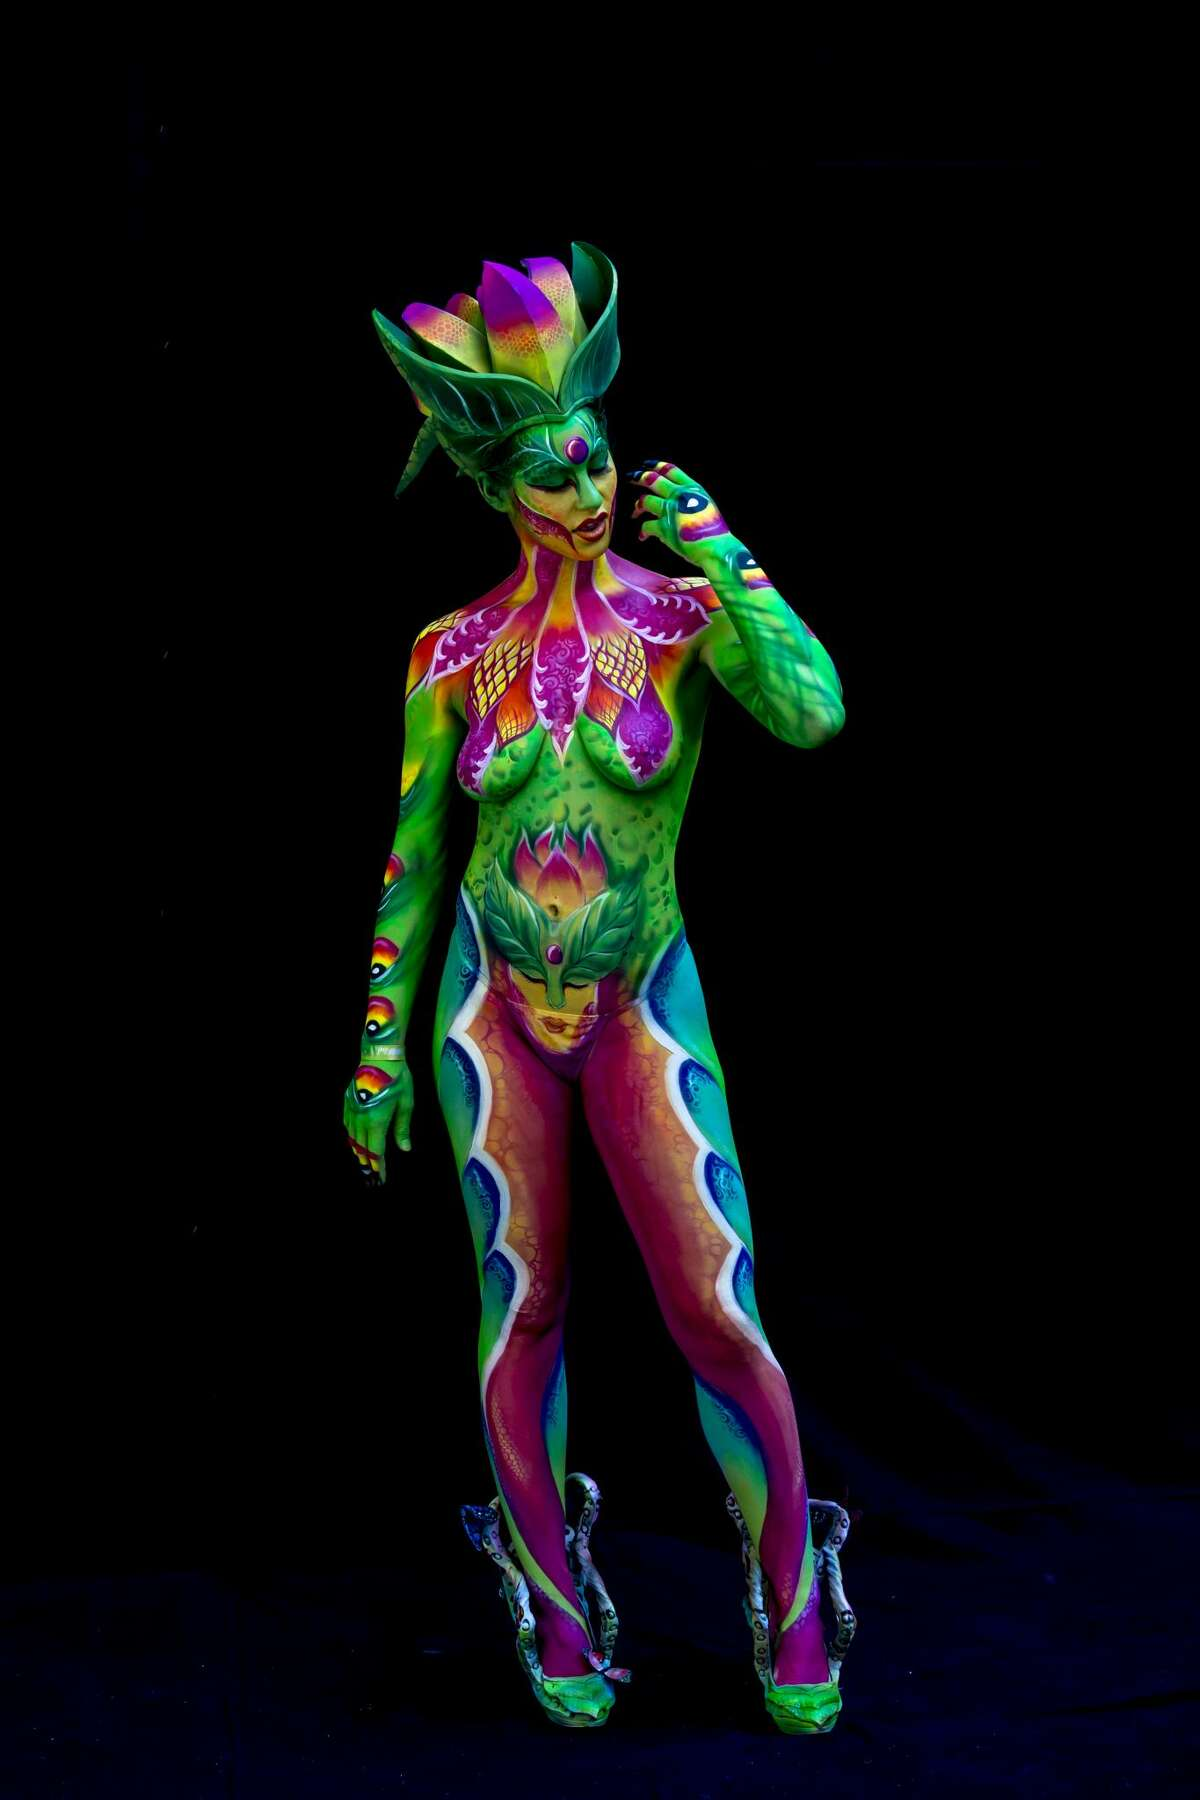 A model poses for a picture during the World Bodypainting Festival 2016 on July 1, 2016 in Poertschach am Woerthersee, Austria. (Photo by Jan Hetfleisch/Getty Images)